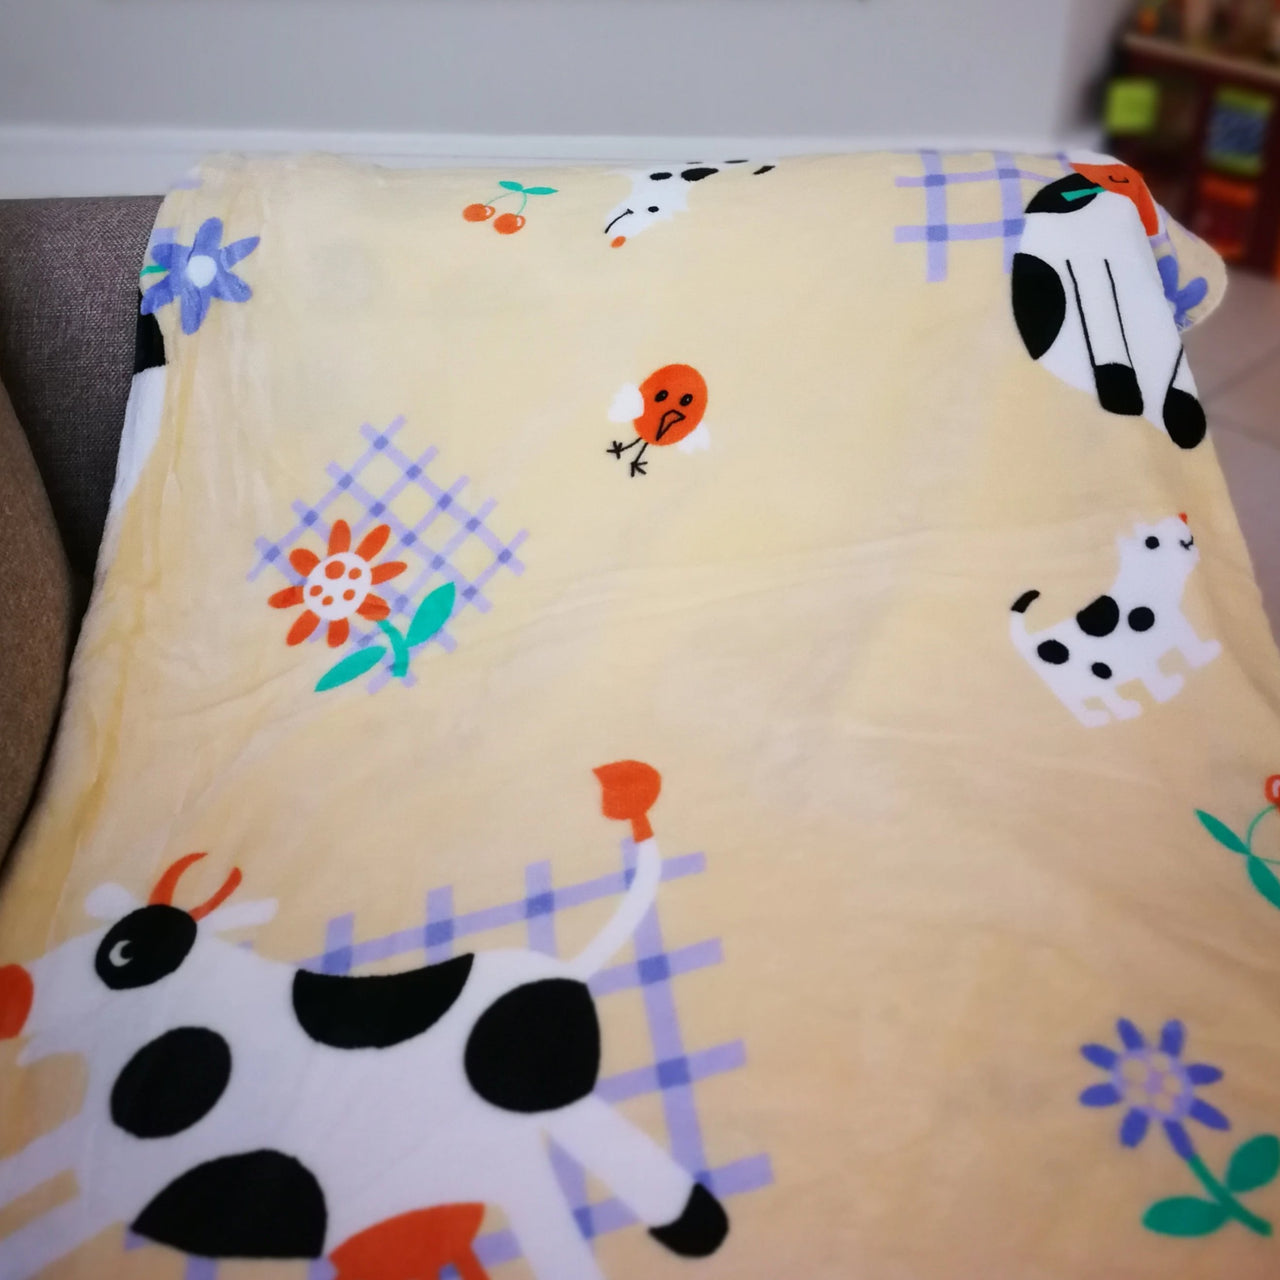 Supersoft reversible farm themed yellow baby blanket . Perfect for baby in the pram or as a playmat. Young children will love to snuggle up in it too. A great gift for a newborn or for a baby shower.